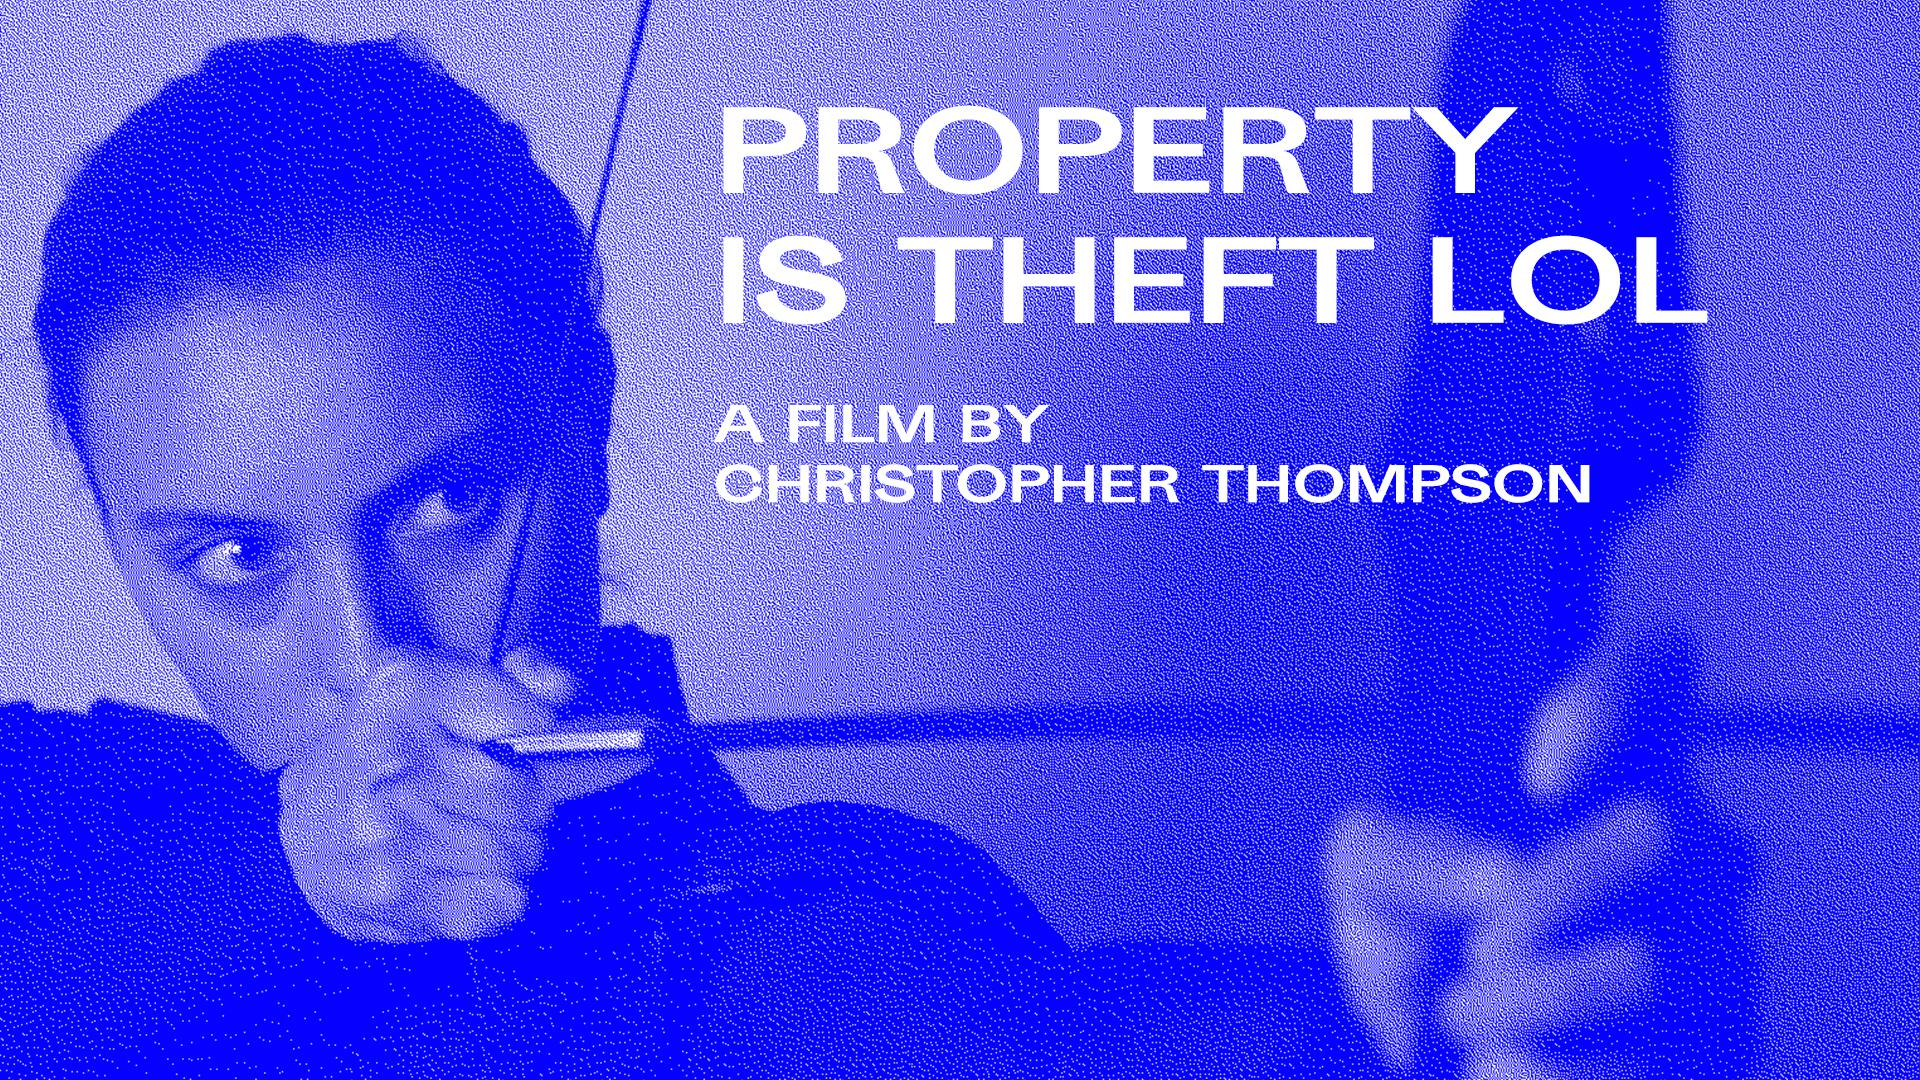 Property is Theft lol